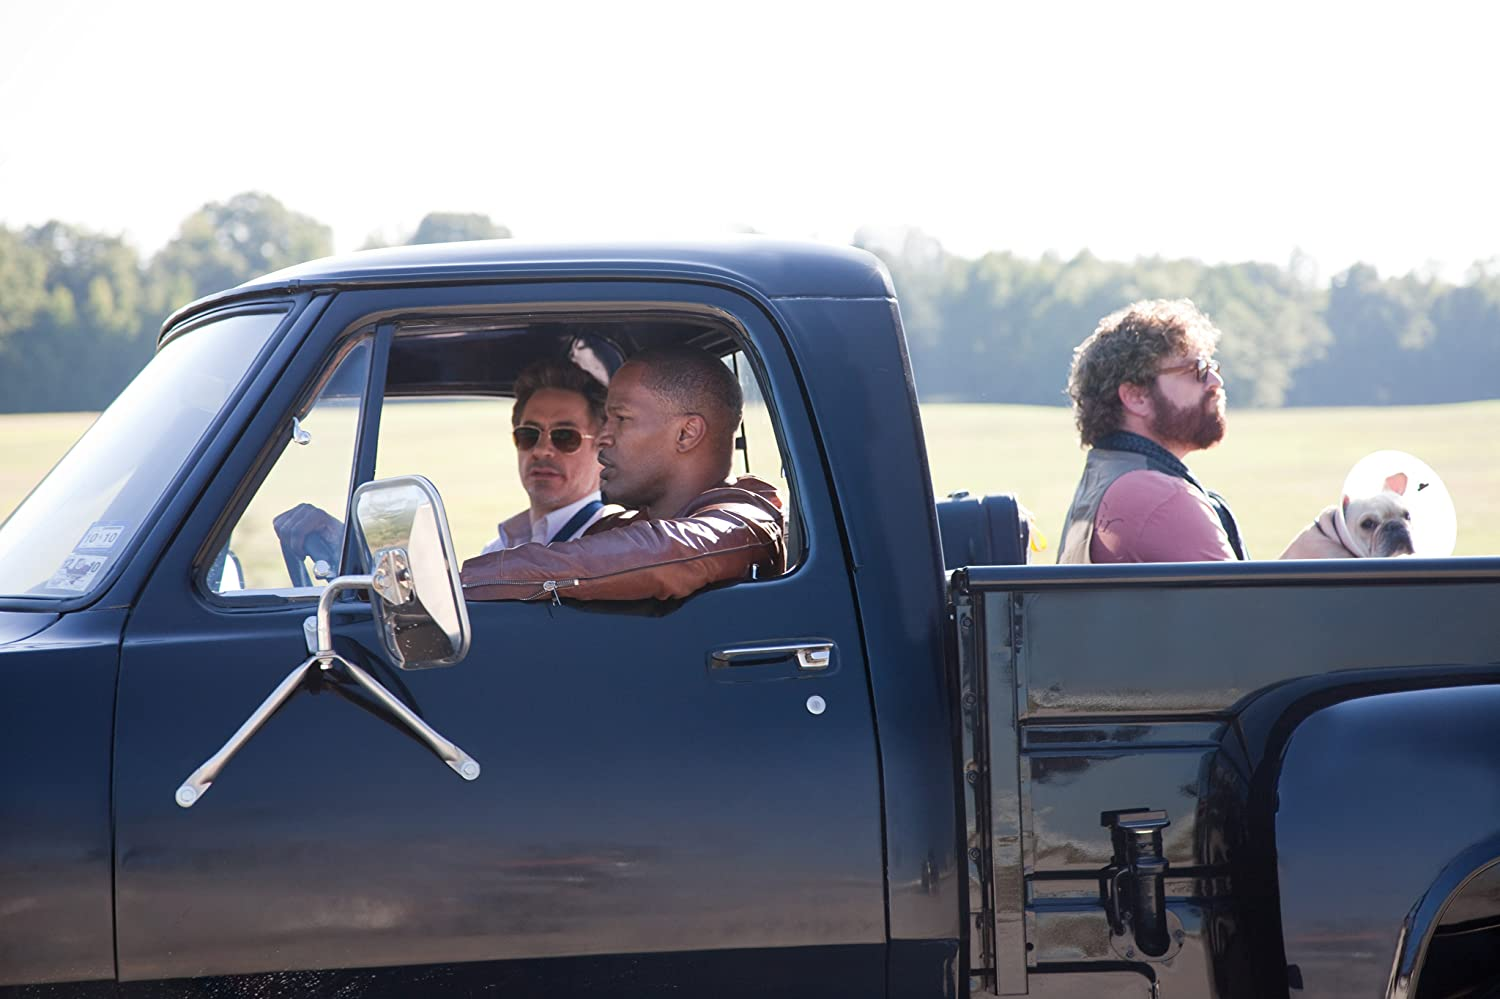 Robert Downey Jr., Jamie Foxx, and Zach Galifianakis in Due Date (2010)